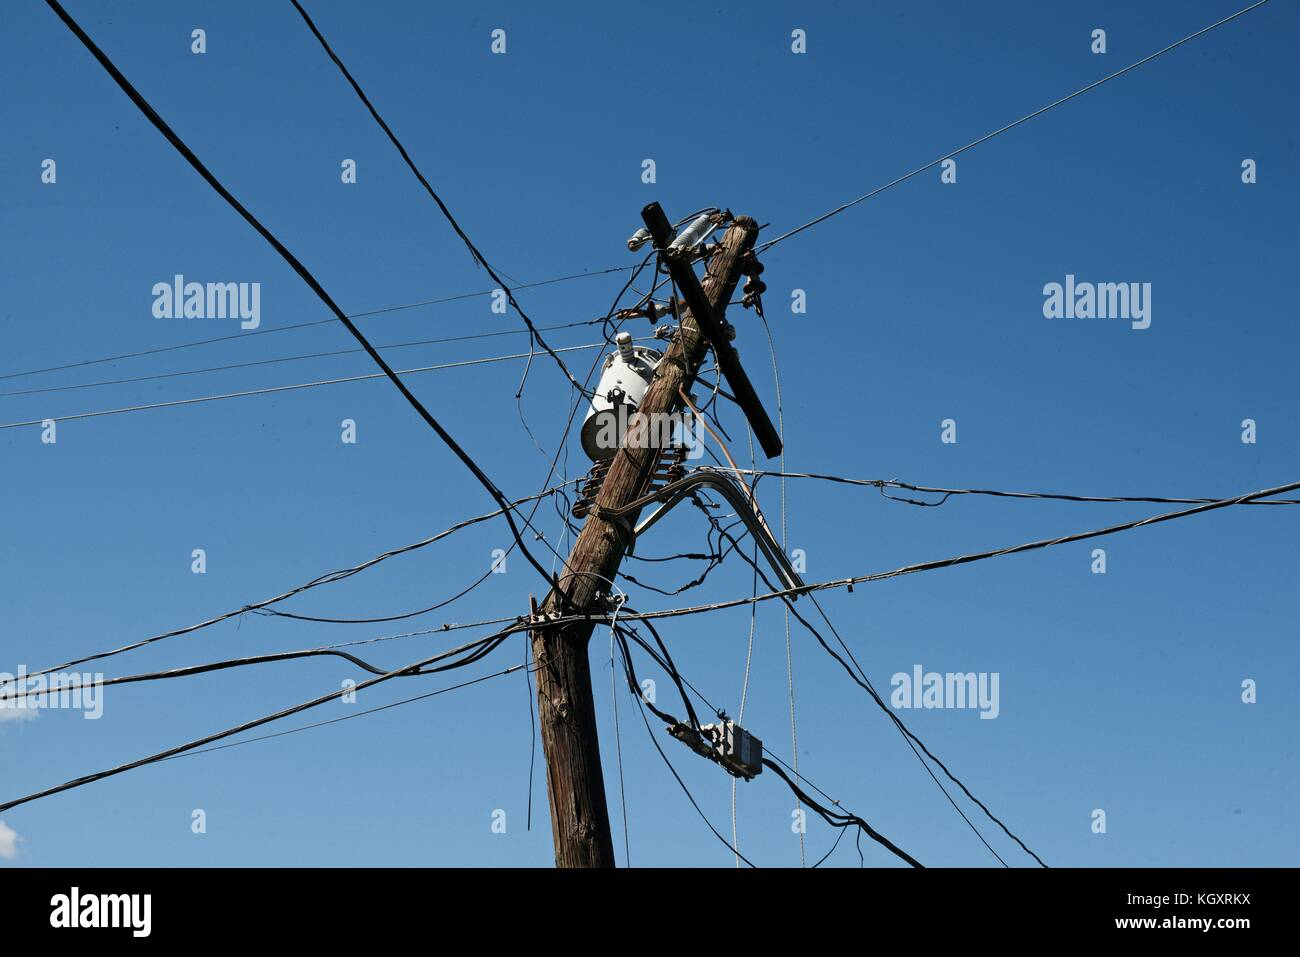 A damaged and unstable power line hangs in the air during relief efforts in the aftermath of Hurricane Maria November - Stock Image